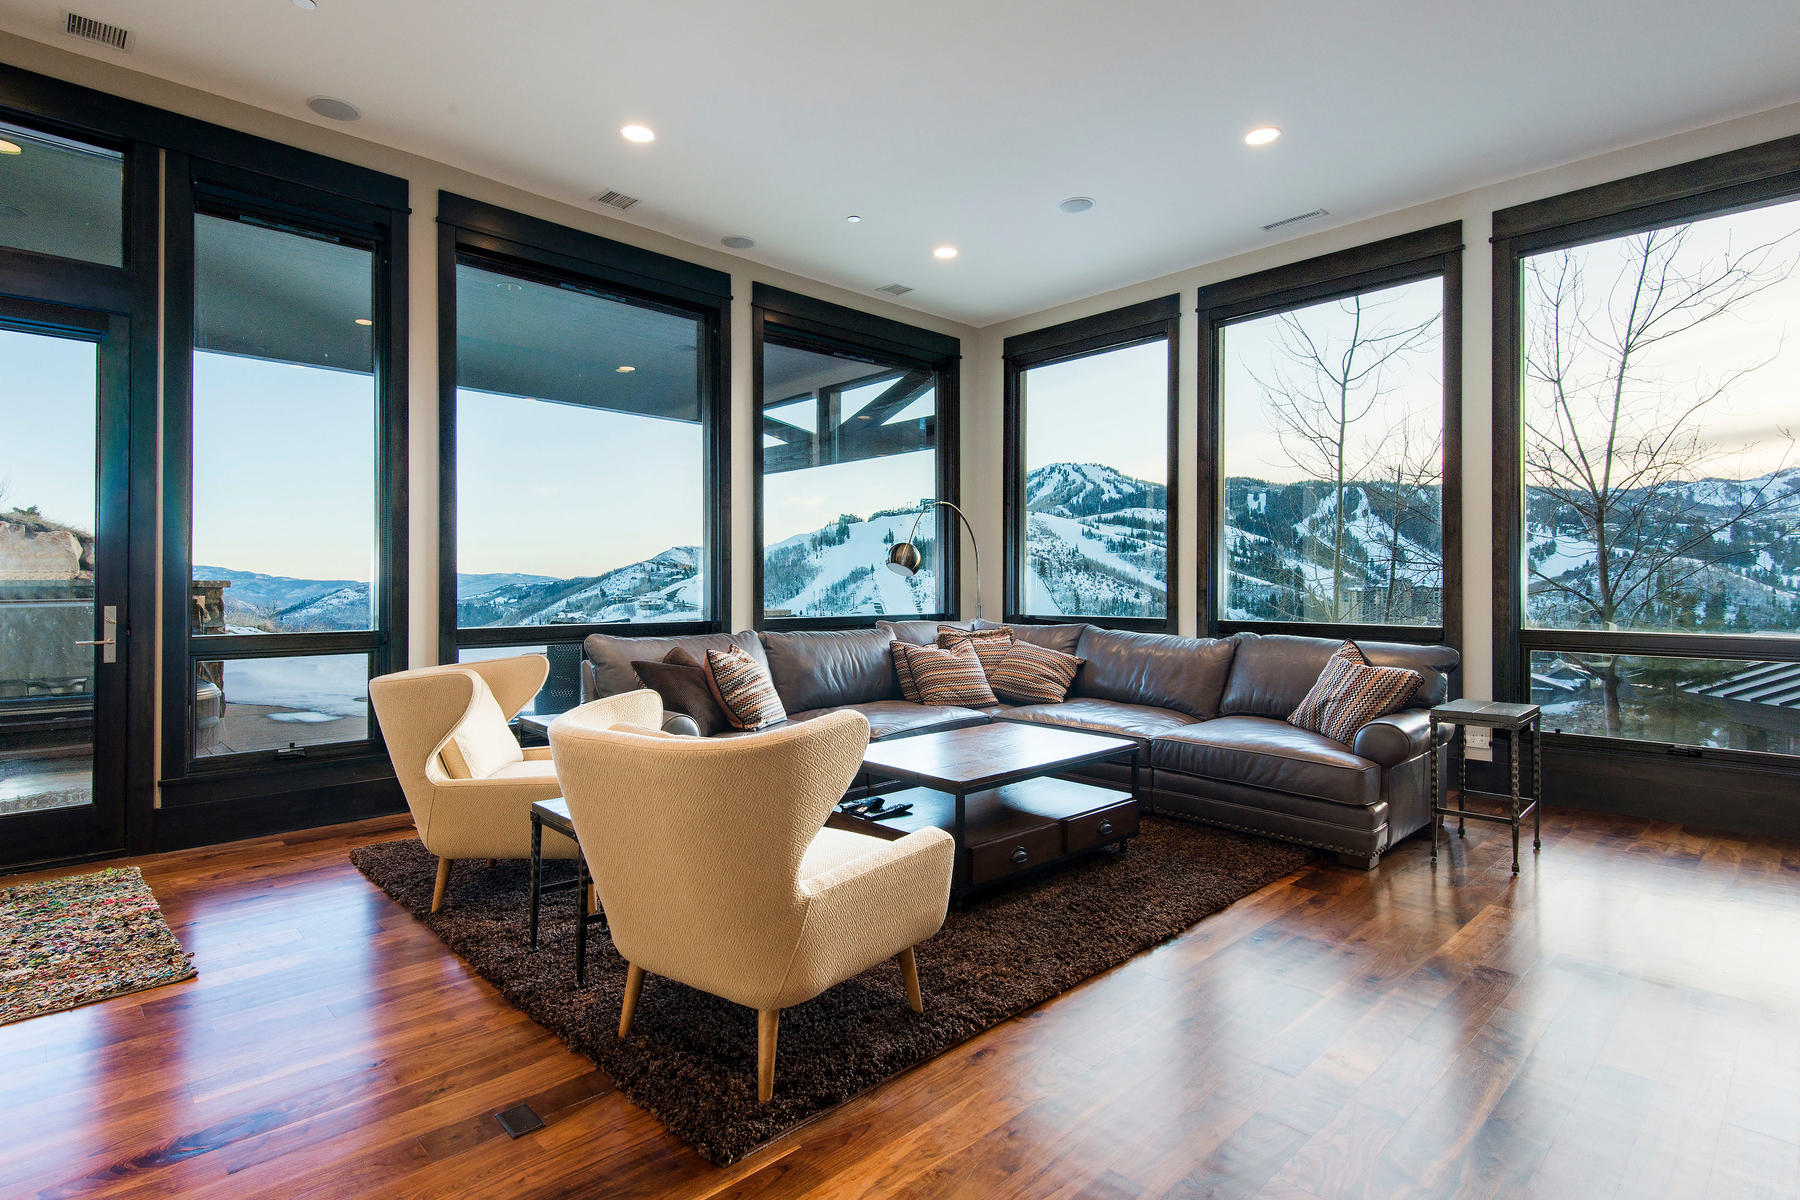 Additional photo for property listing at Deer Valley Mountain Contemporary Masterpiece! 11380 N Snowtop Rd Park City, Utah 84060 United States